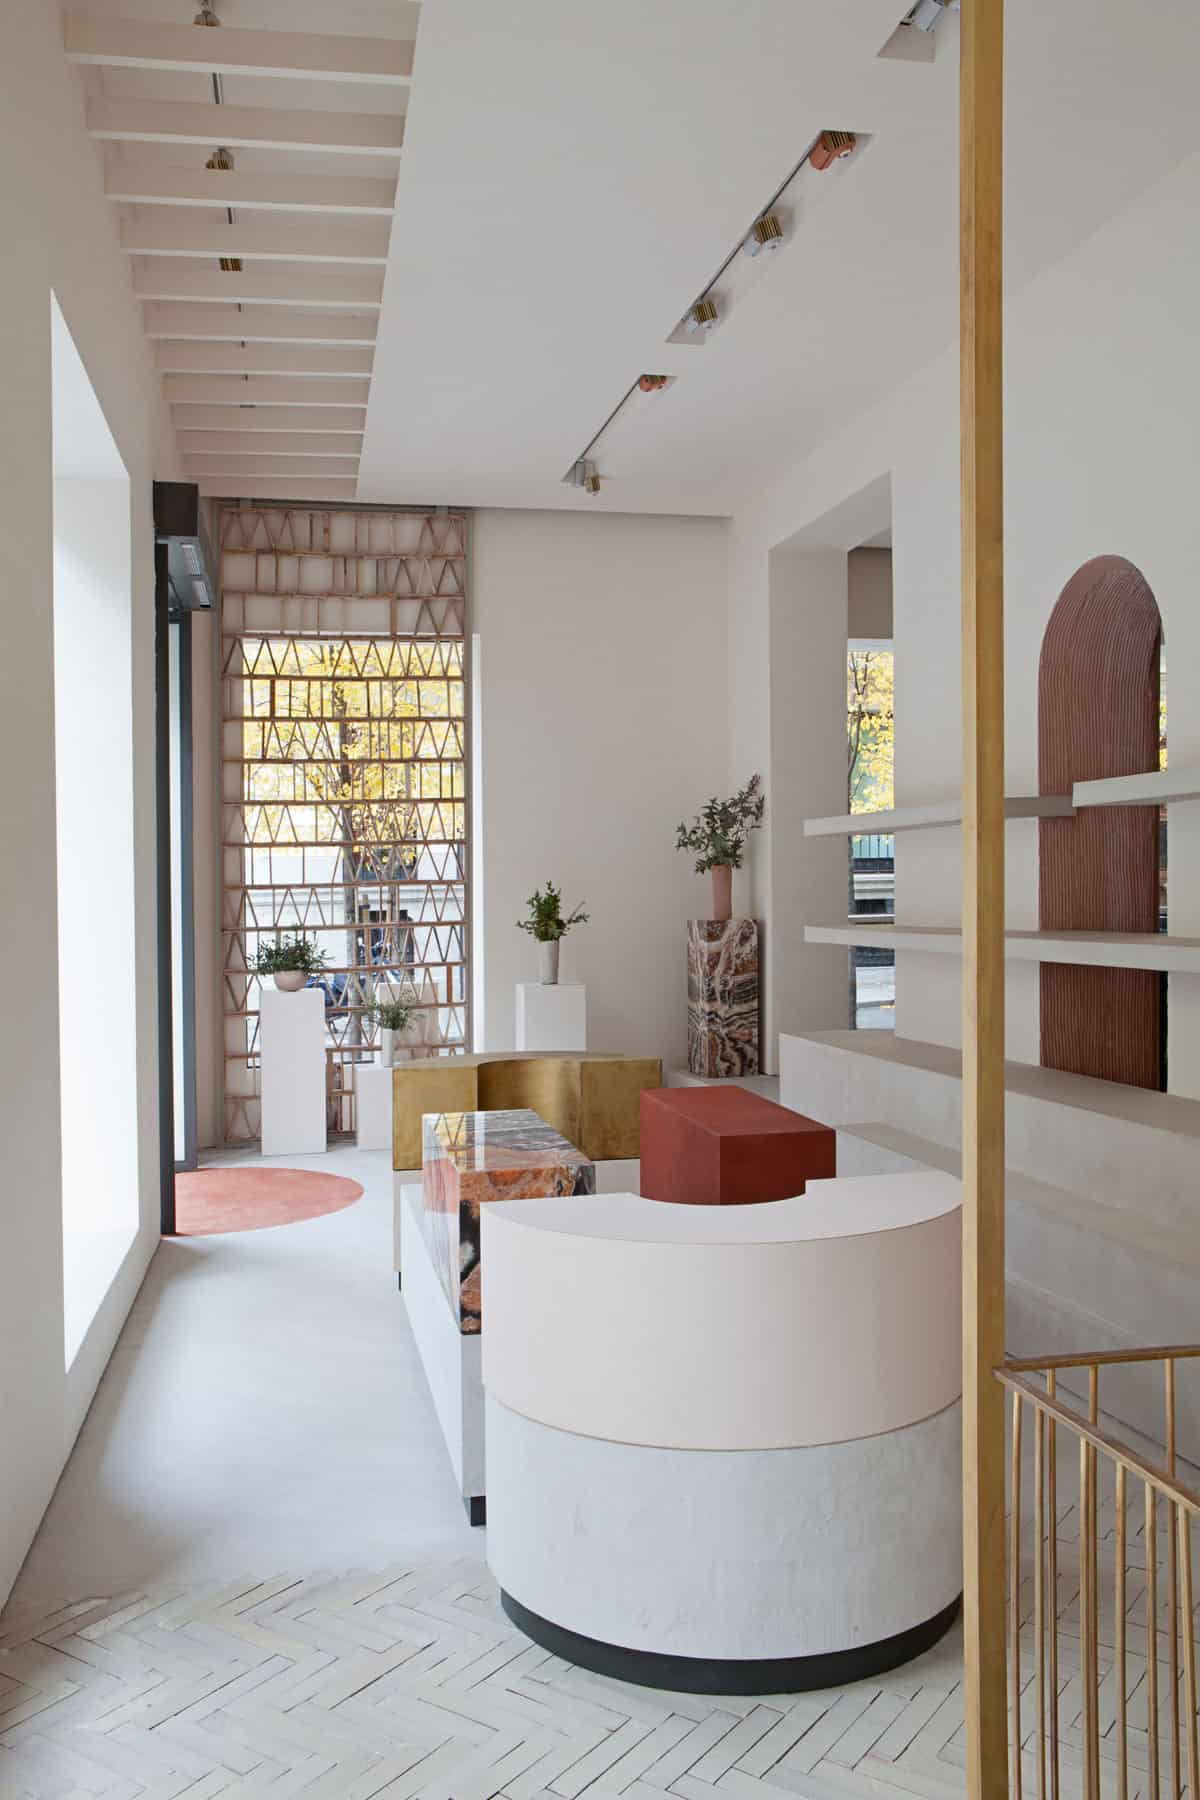 The Simplicity and Elegance of this Space is its Best Attribute